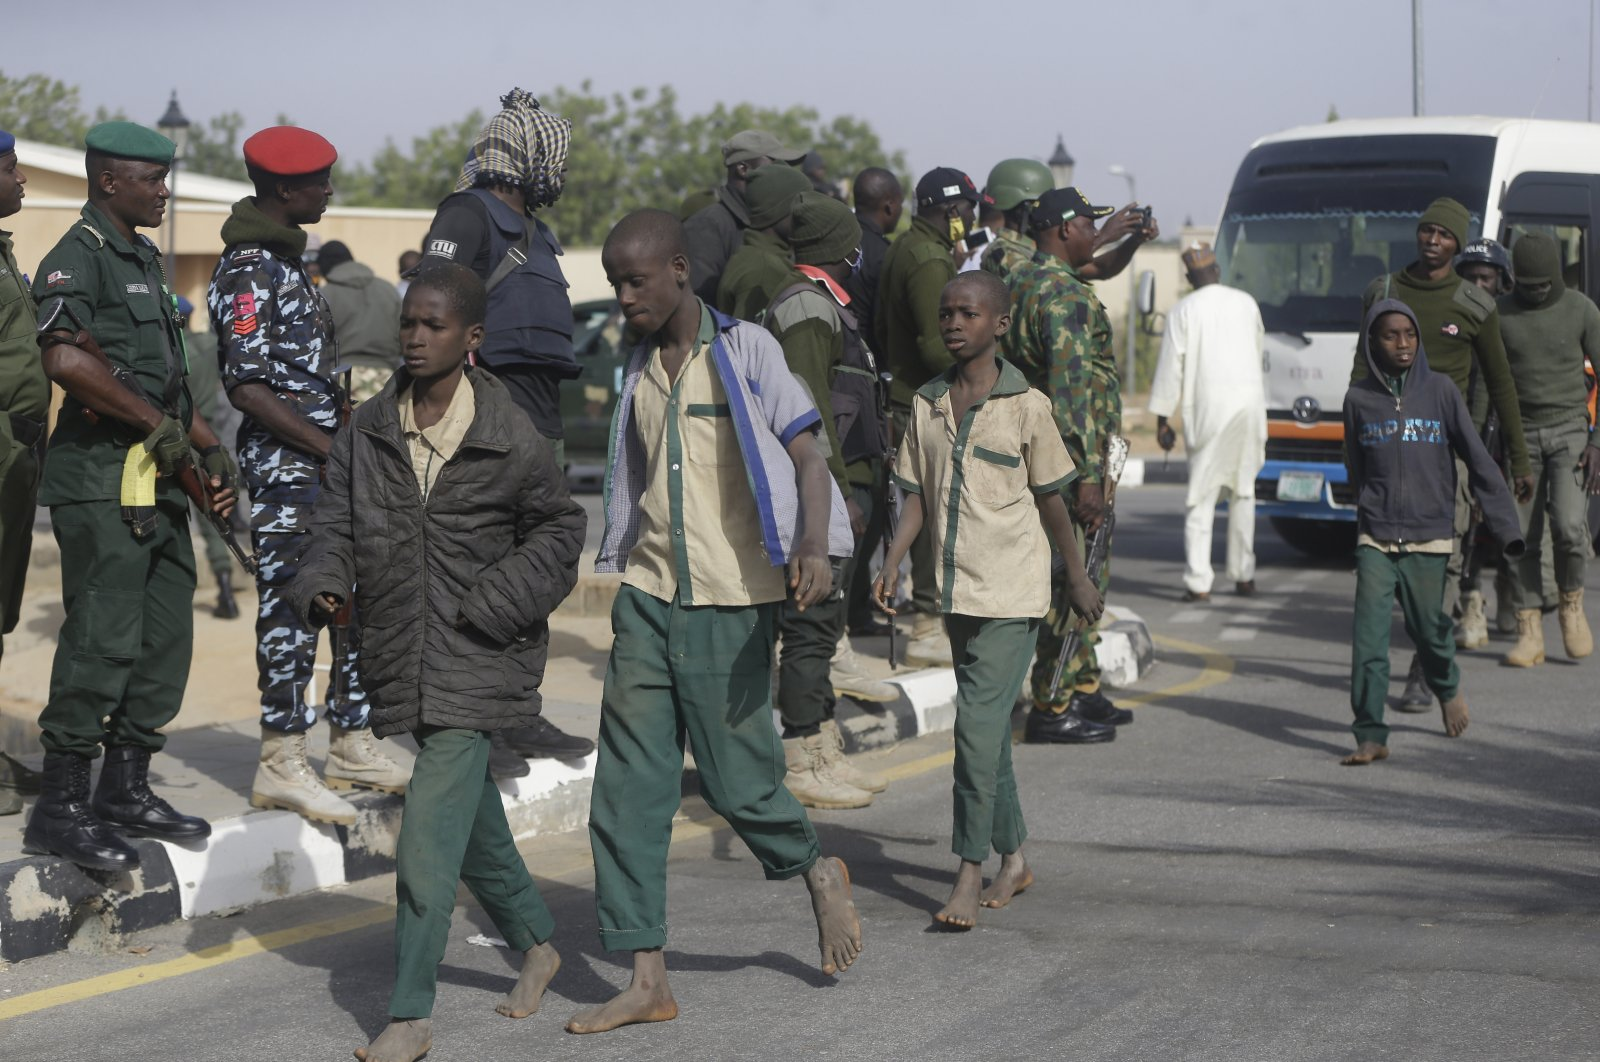 A group of schoolboys are escorted by Nigerian military and officials following their release after they were kidnapped, in Katsina, Nigeria, Dec. 18, 2020. (AP Photo)